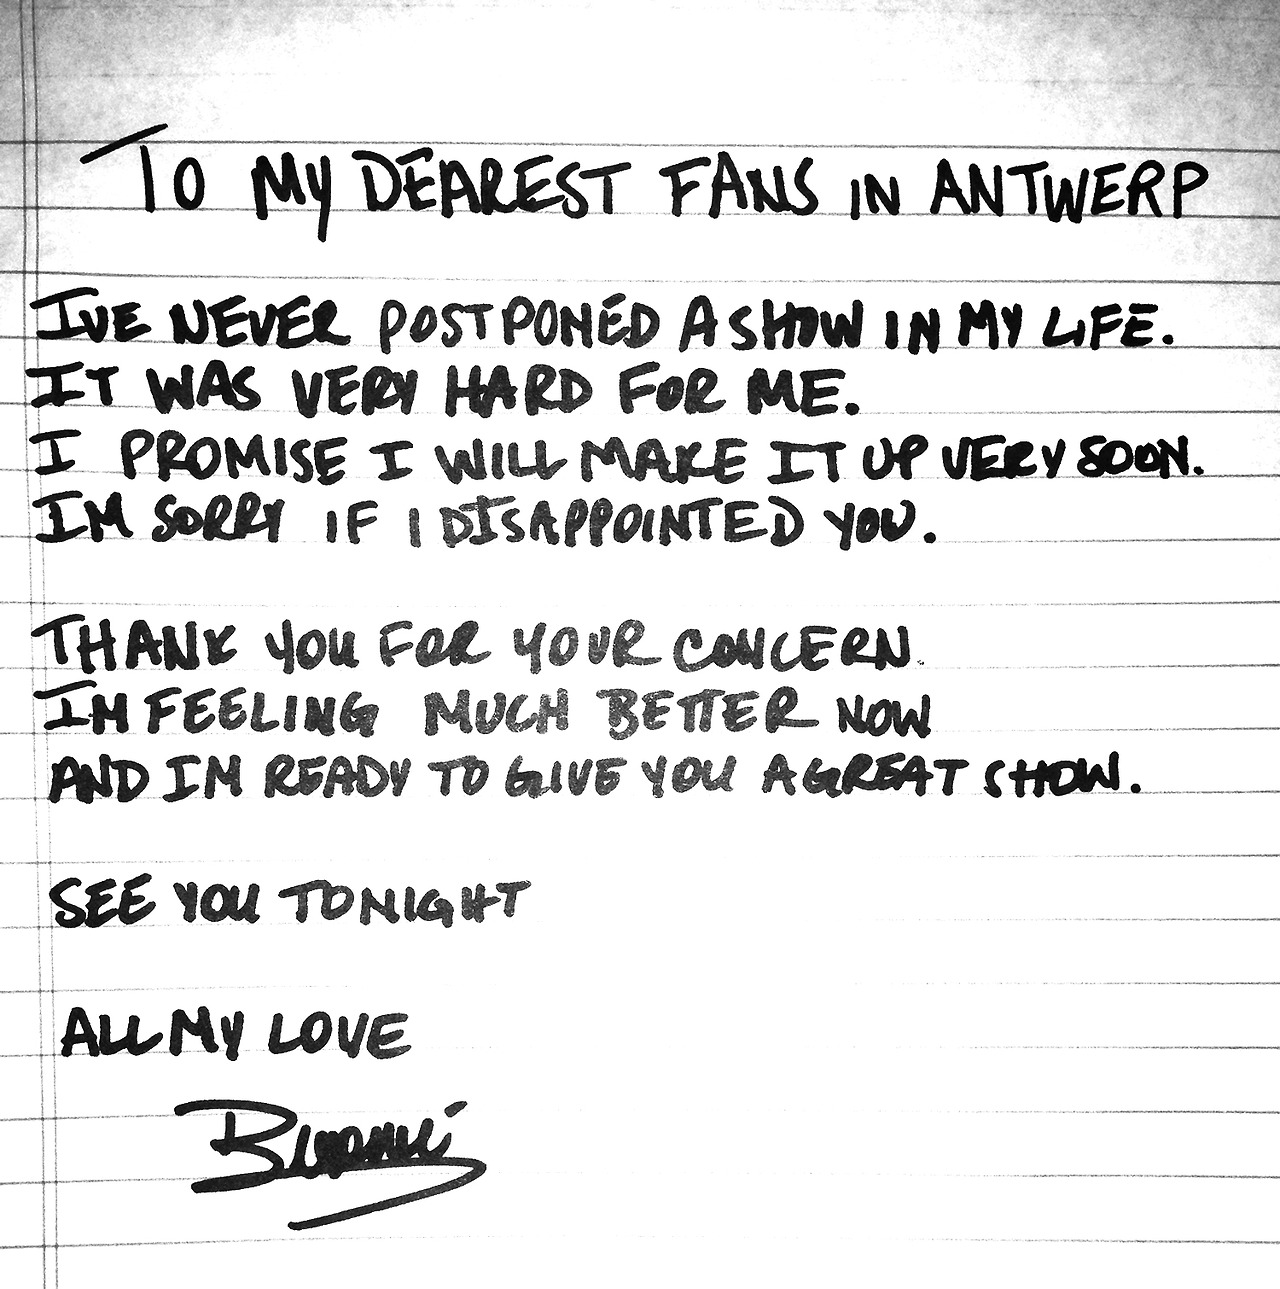 Beyonce's handwritten Tumblr note to her Antwerp fans. (Beyonce/Tumblr)